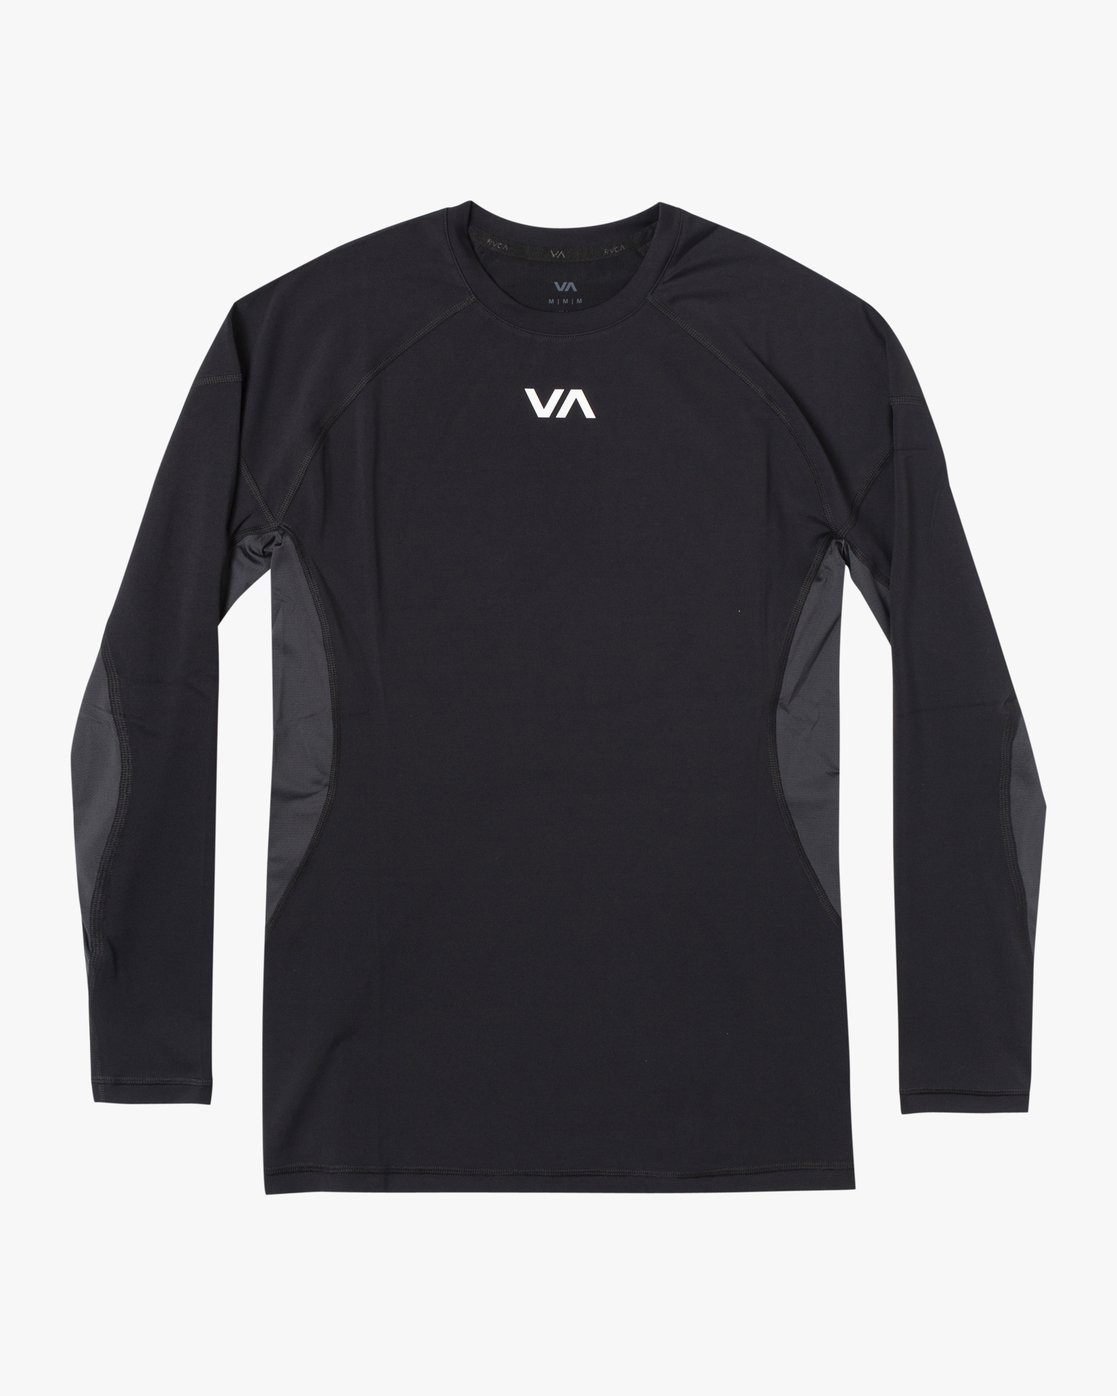 0 COMPRESSION LONG SLEEVE TOP Black VR011RCL RVCA